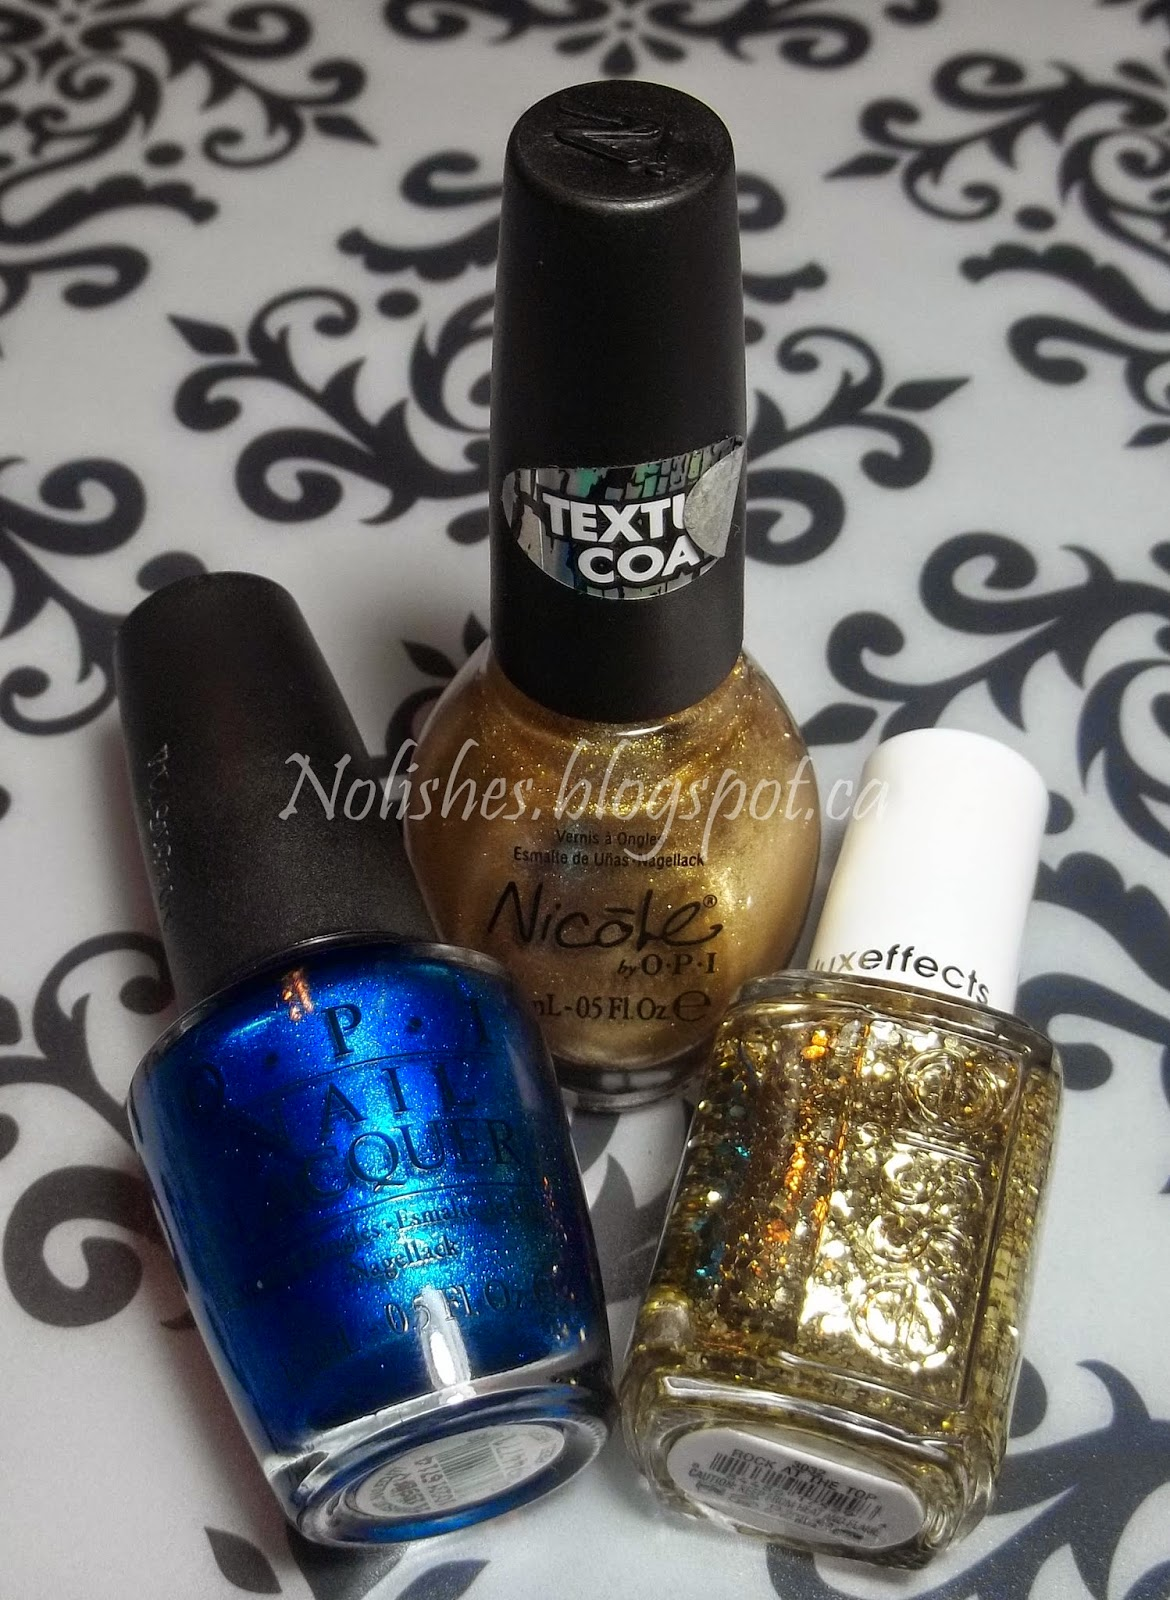 OPI 'Swimsuit... Nailed It!', Nicole by OPI 'Gold Texture', and Essie 'Rock at the Top'